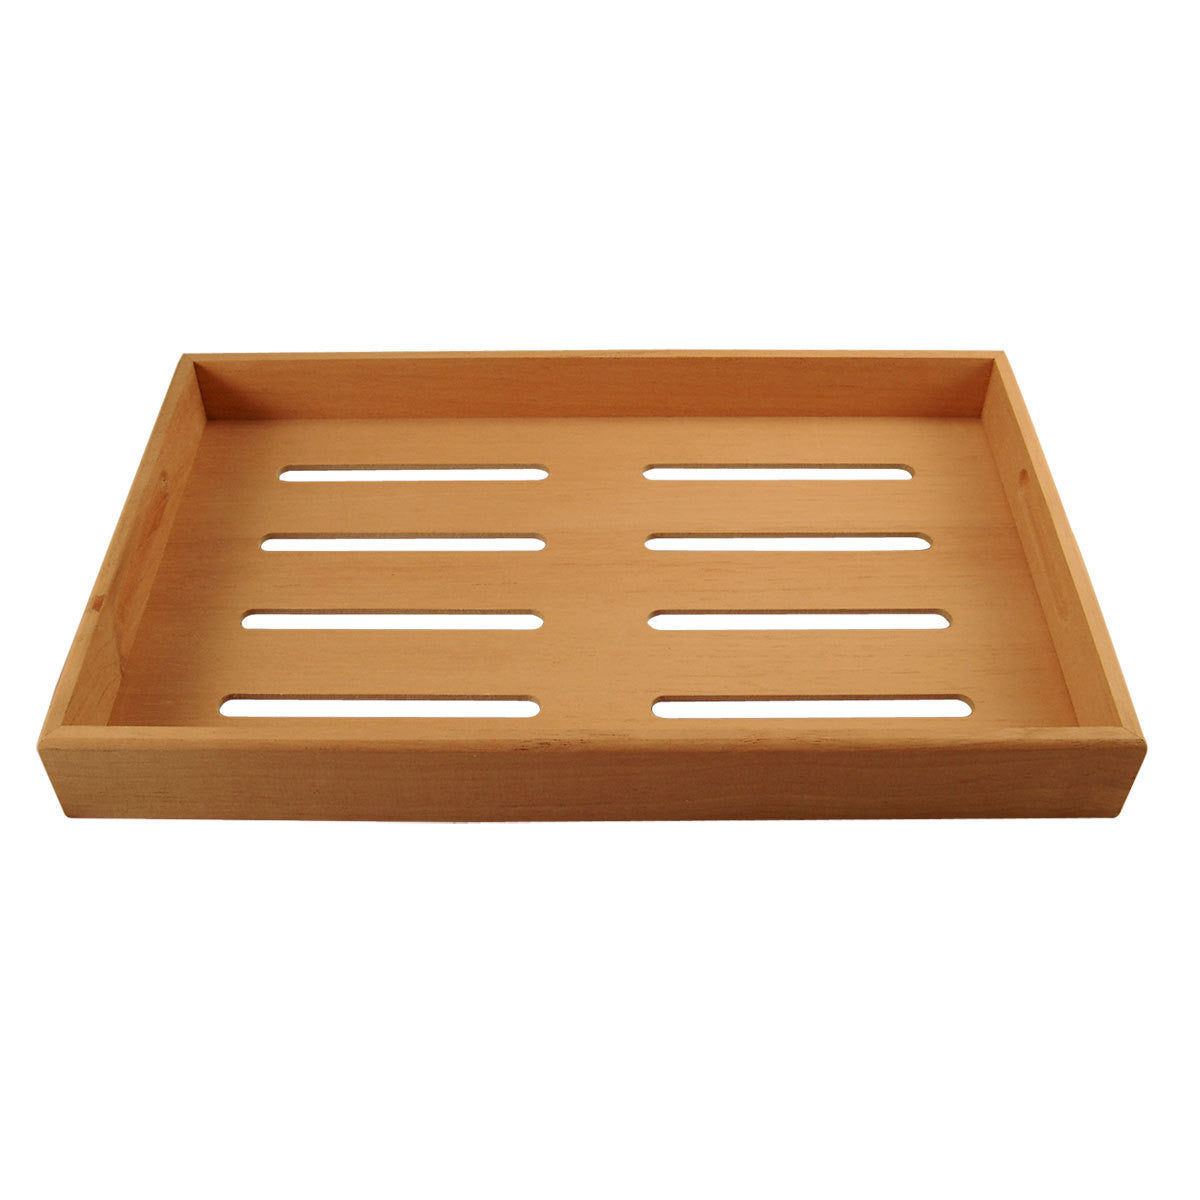 Cigar Humidor Trays for Clasico Rojo and Clasico Rosa Humidors - Cigar boulevard